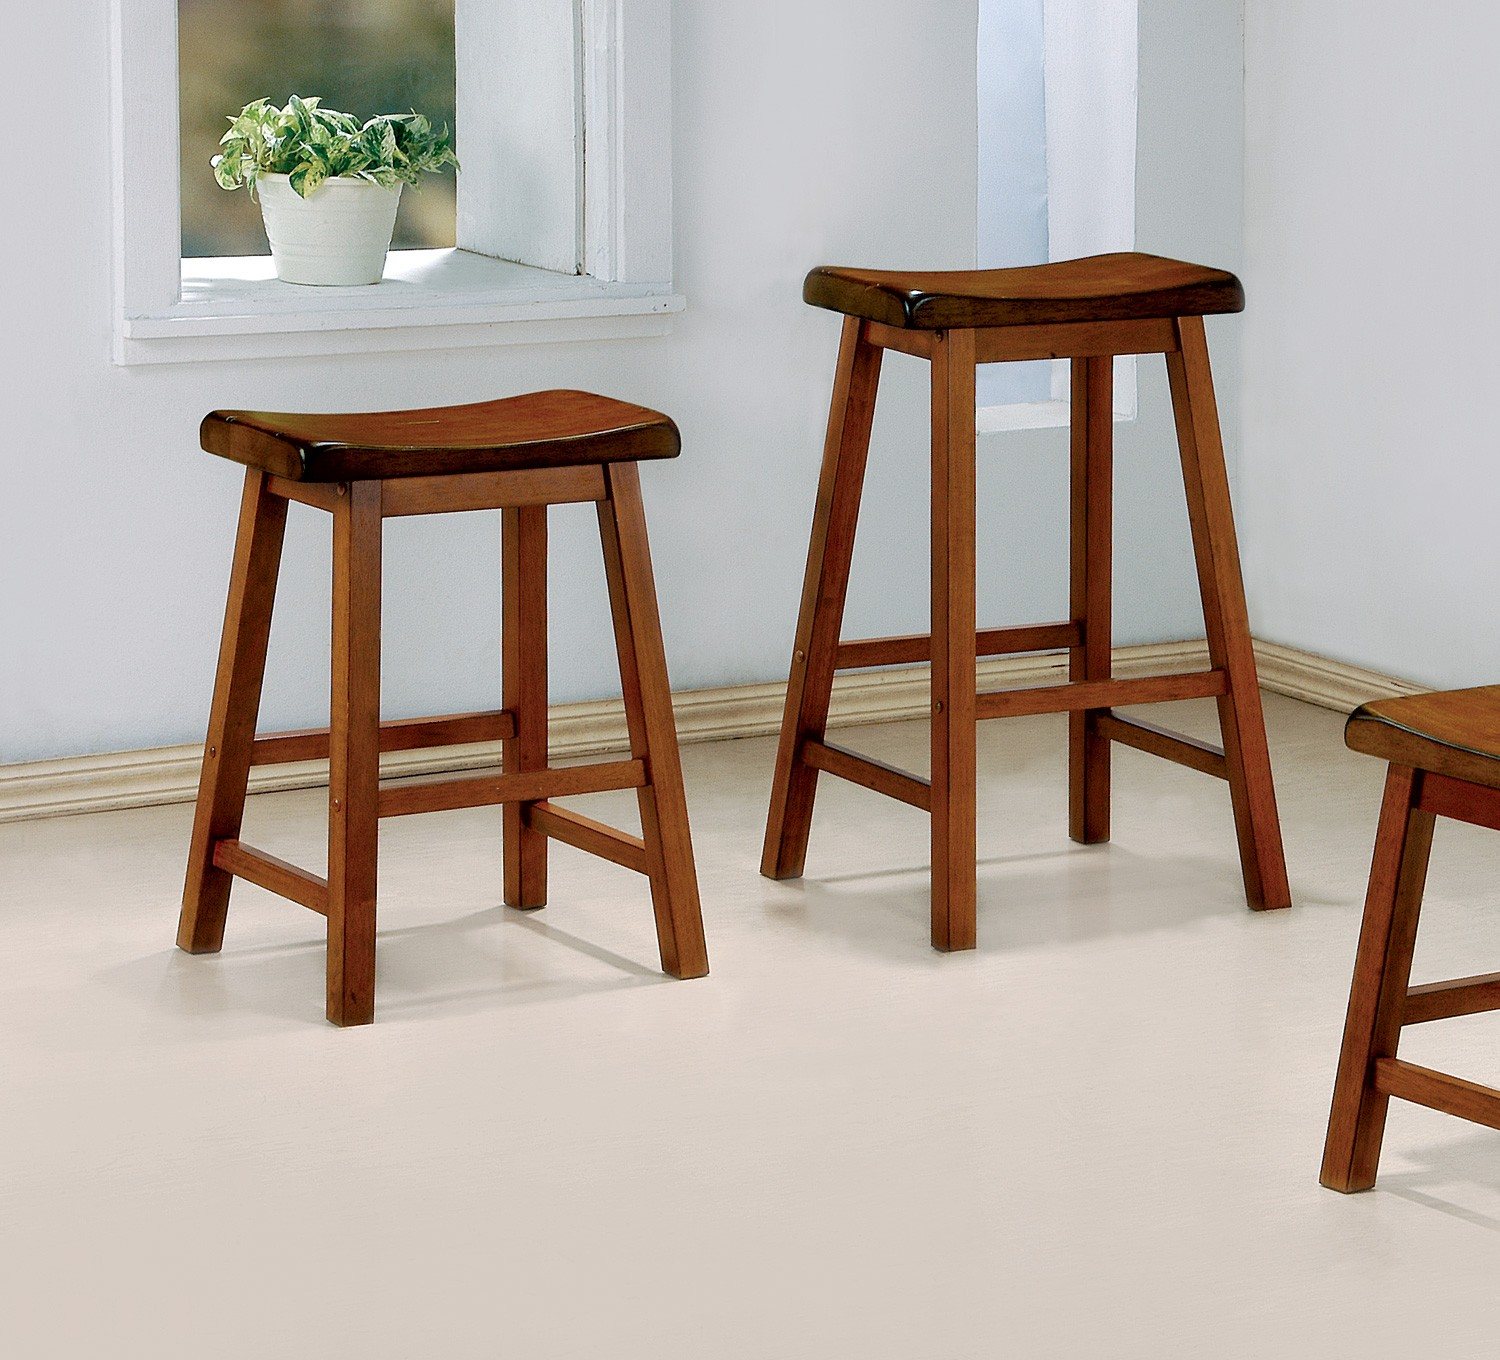 Wooden Stools Benefits Of Wooden Stools For Furniture